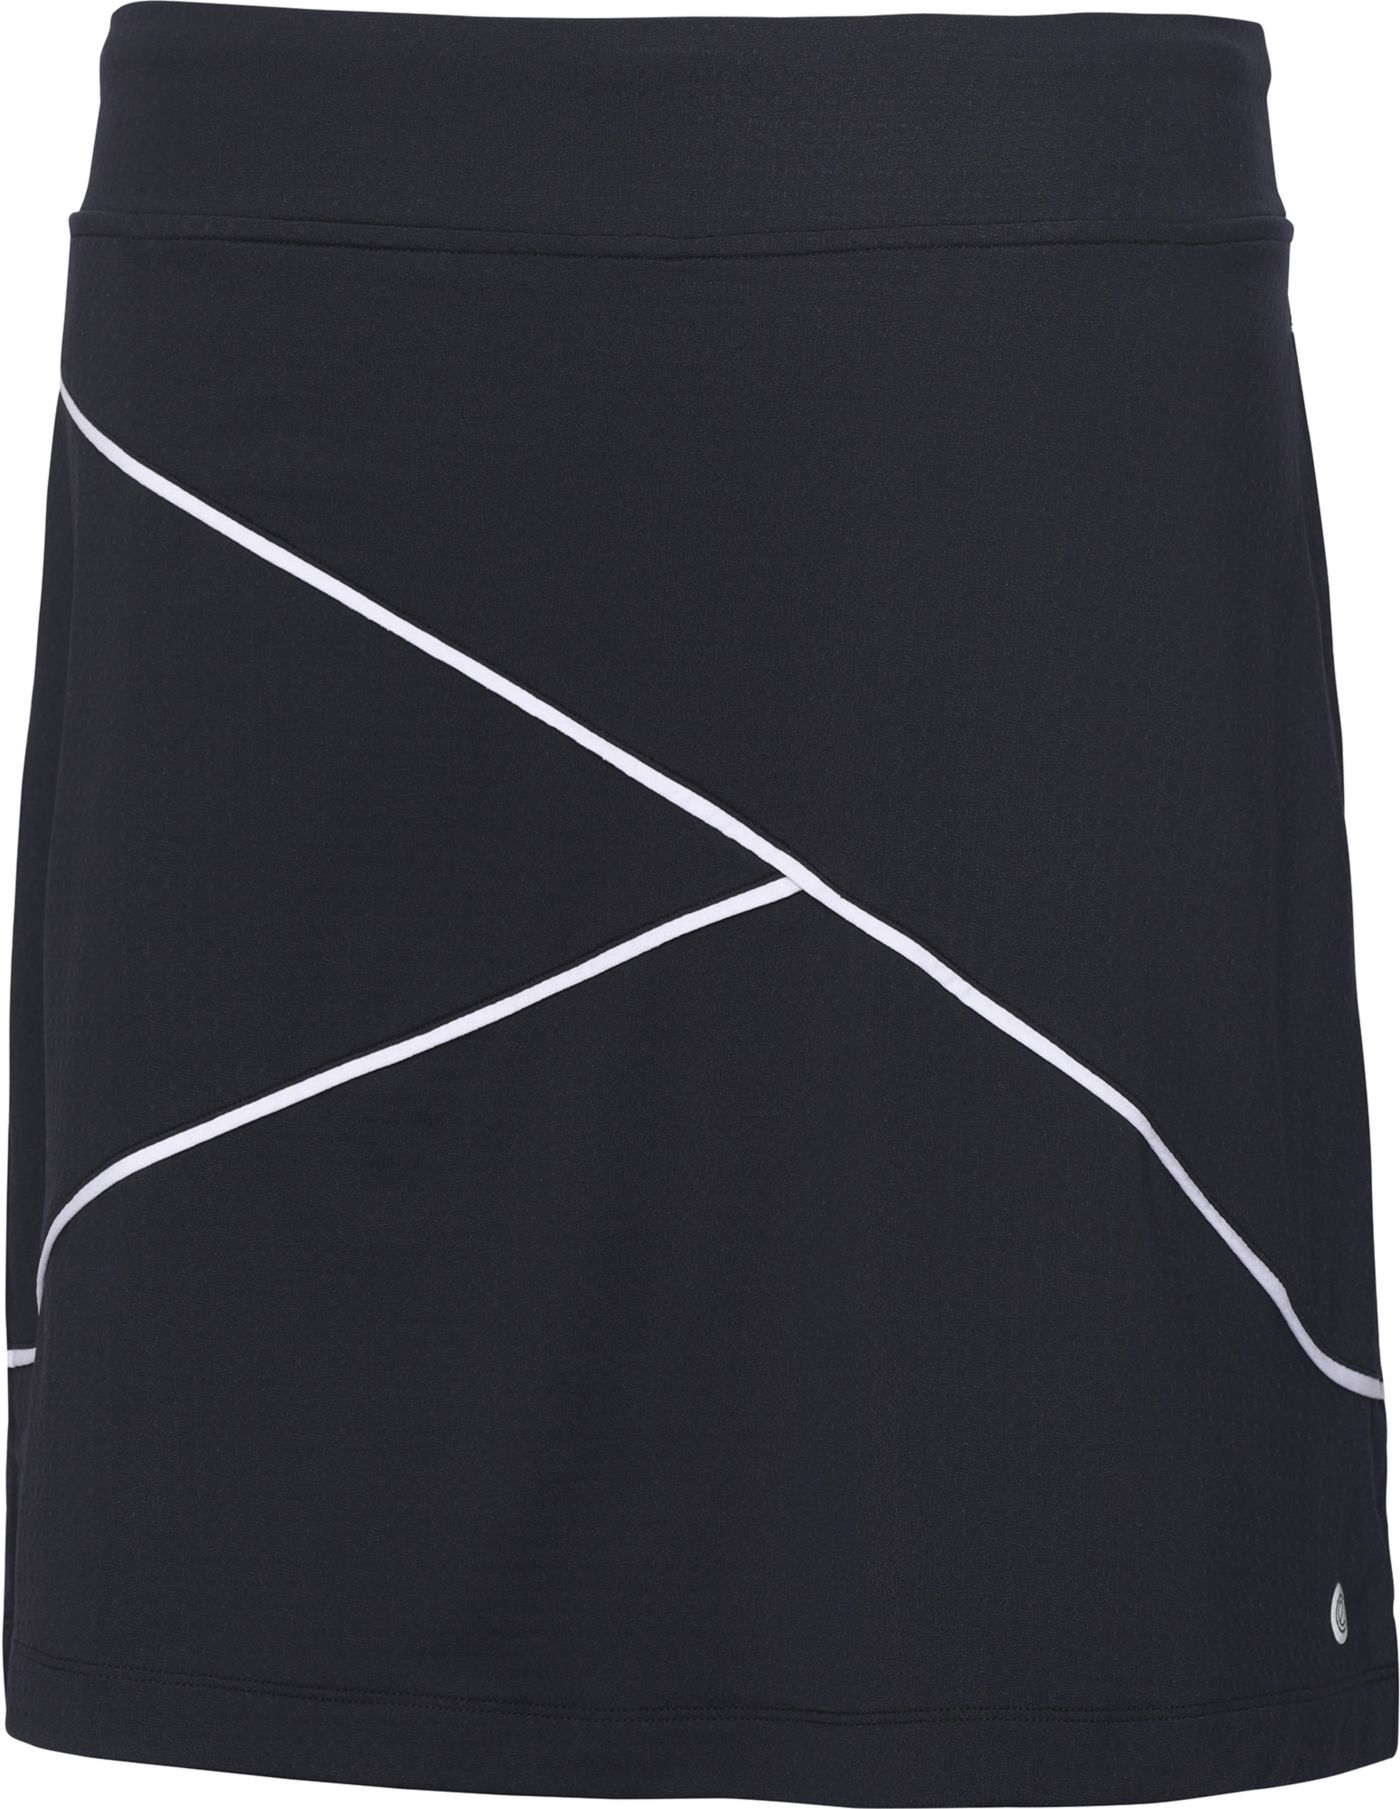 Bette & Court Women's Glee Pull-On Golf Skirt